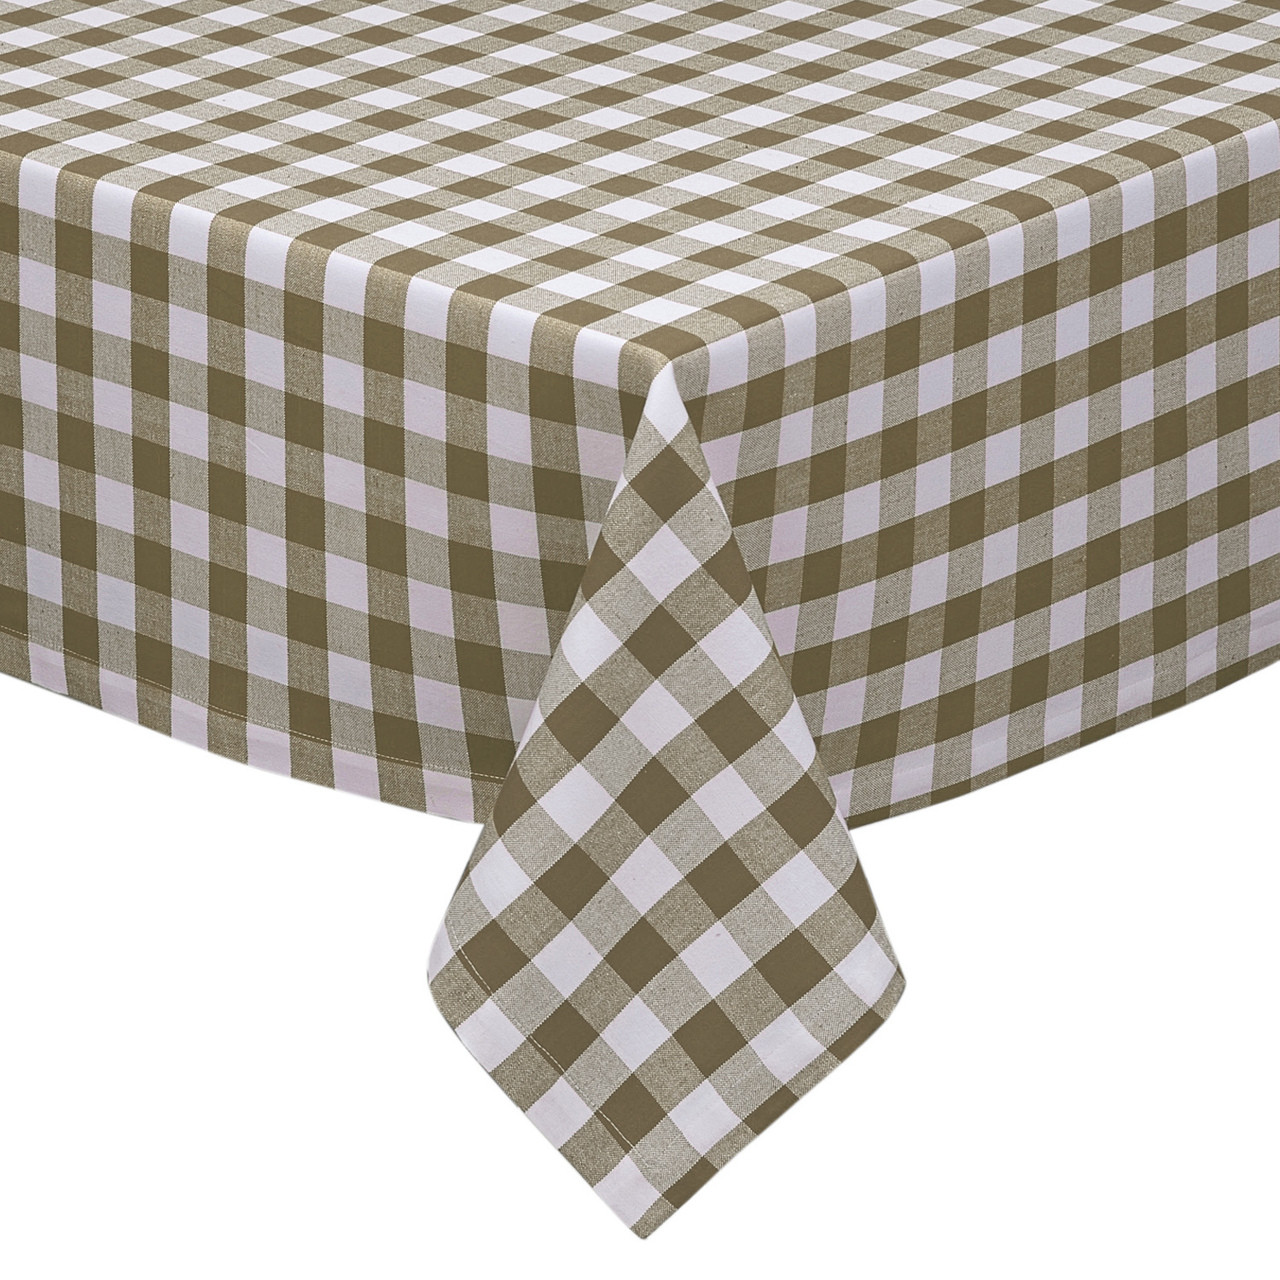 Plaid Taupe Taupe And White Checkered Kitchen Dining Room Tablecloth Gingham Plaid Design Cotton Rich 54